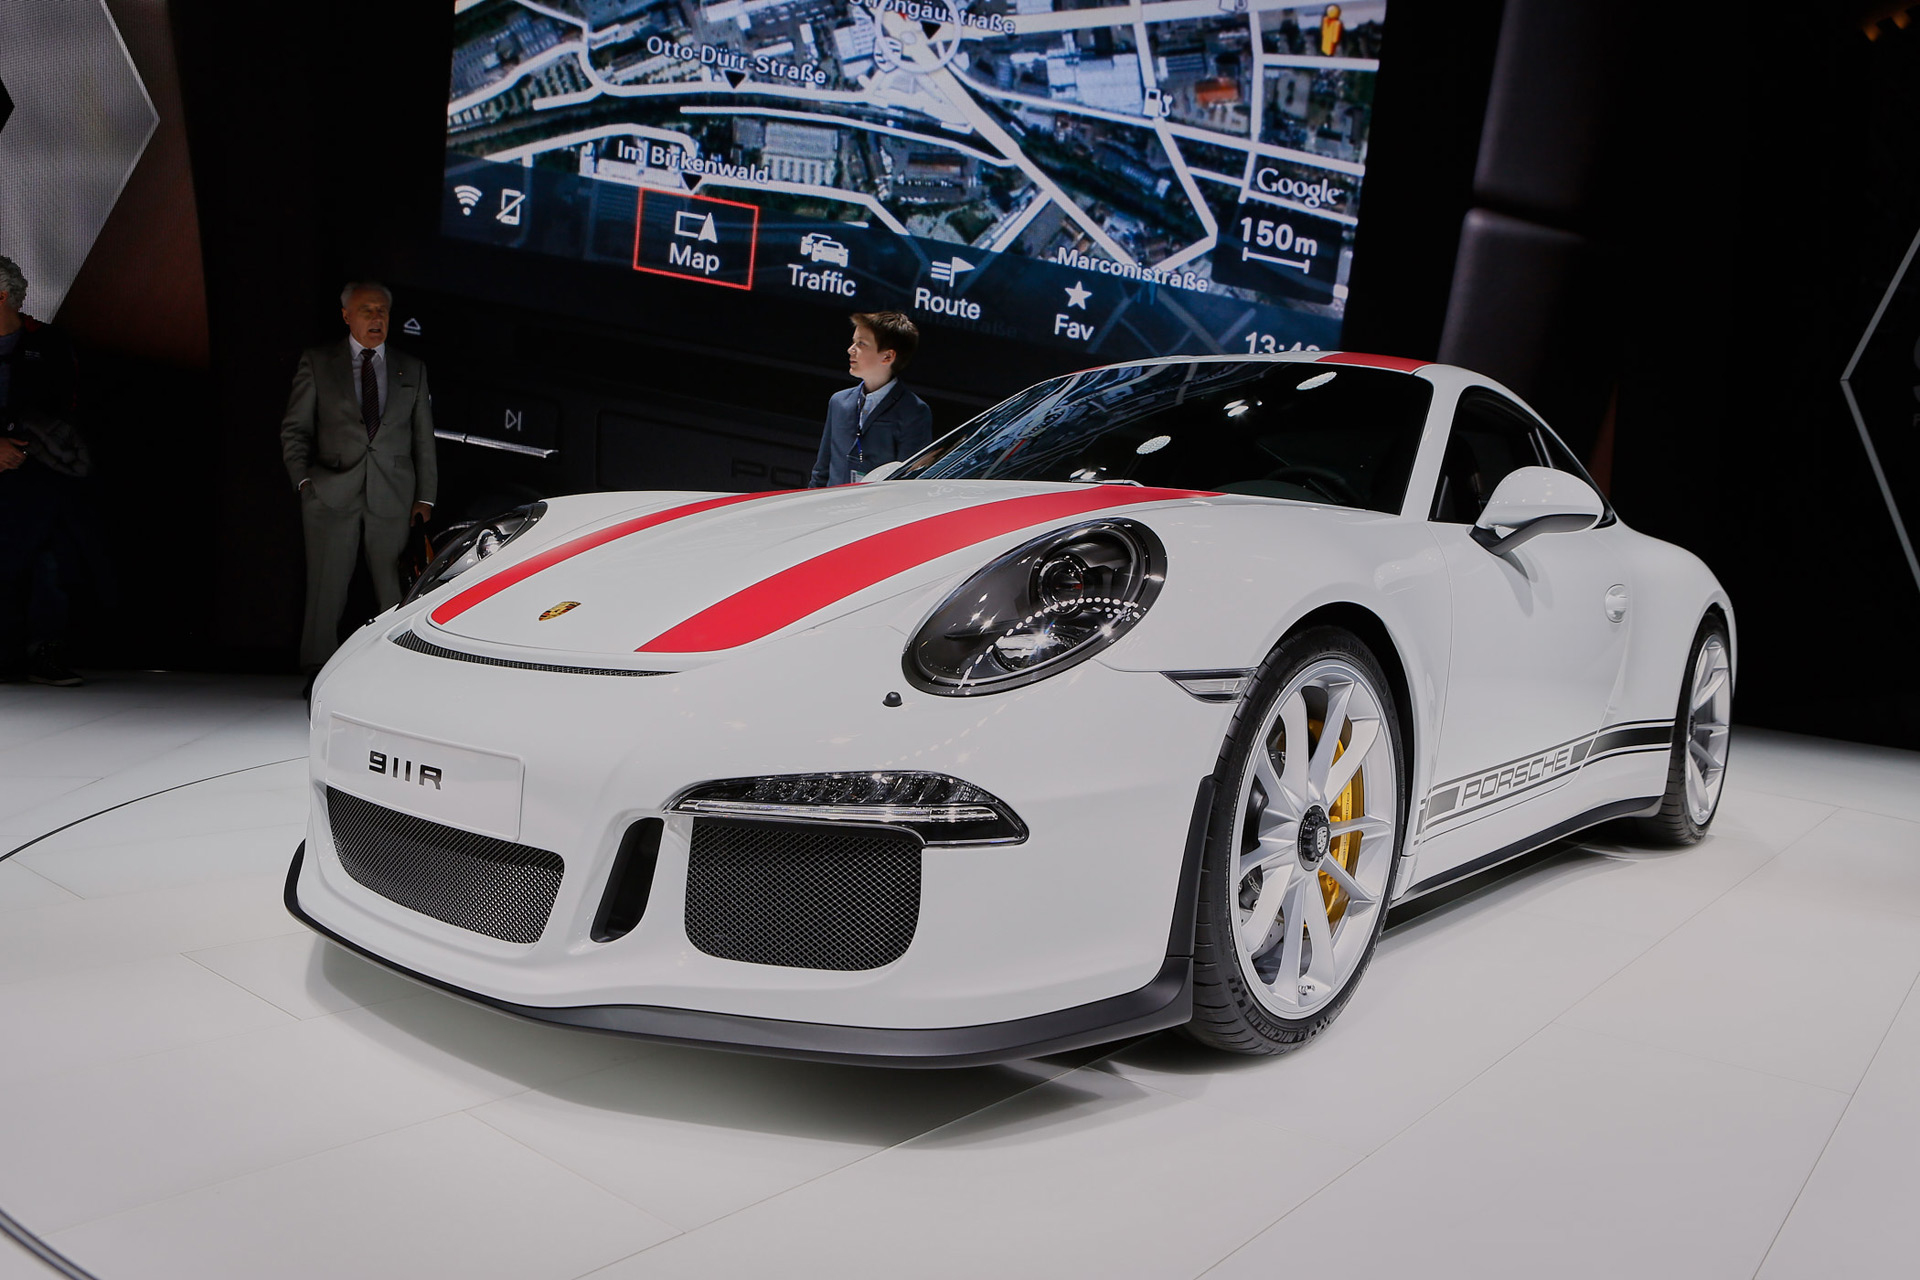 911R For Sale >> Porsche 911 R Selling For Almost 1 3 Million On Used Car Market